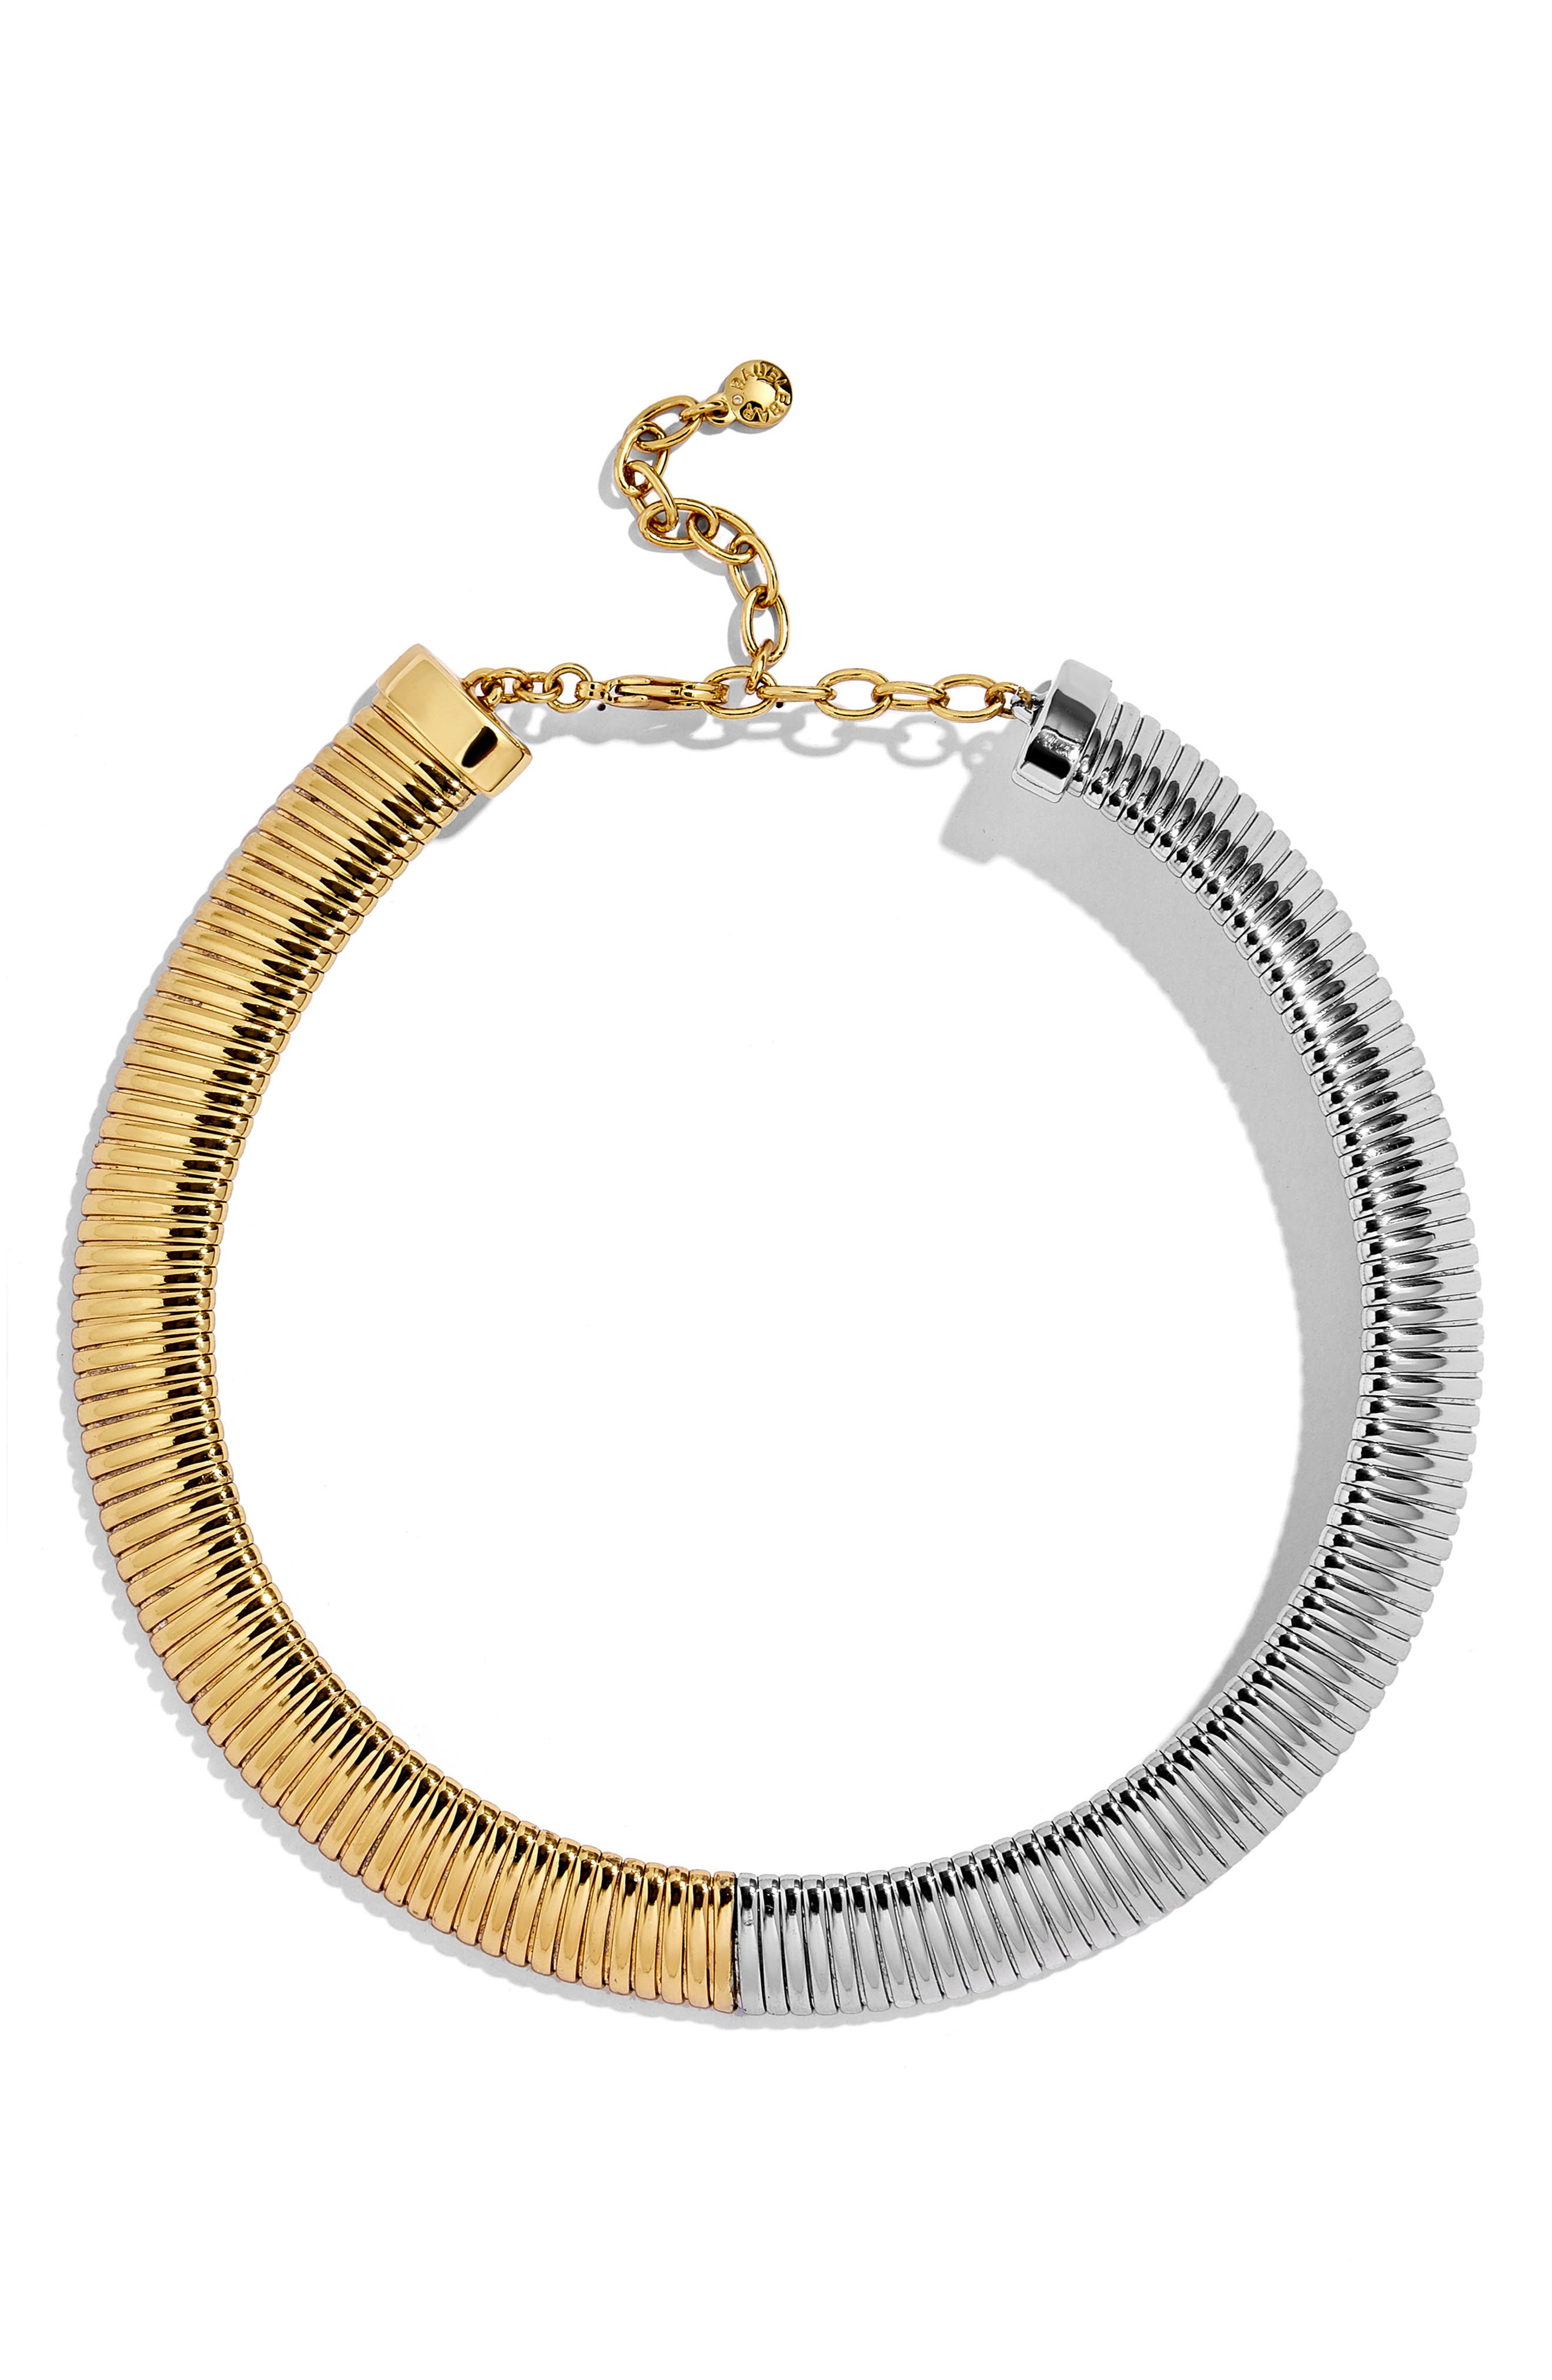 Imperia Statement Necklace,                         Main,                         color, GOLD/ SILVER